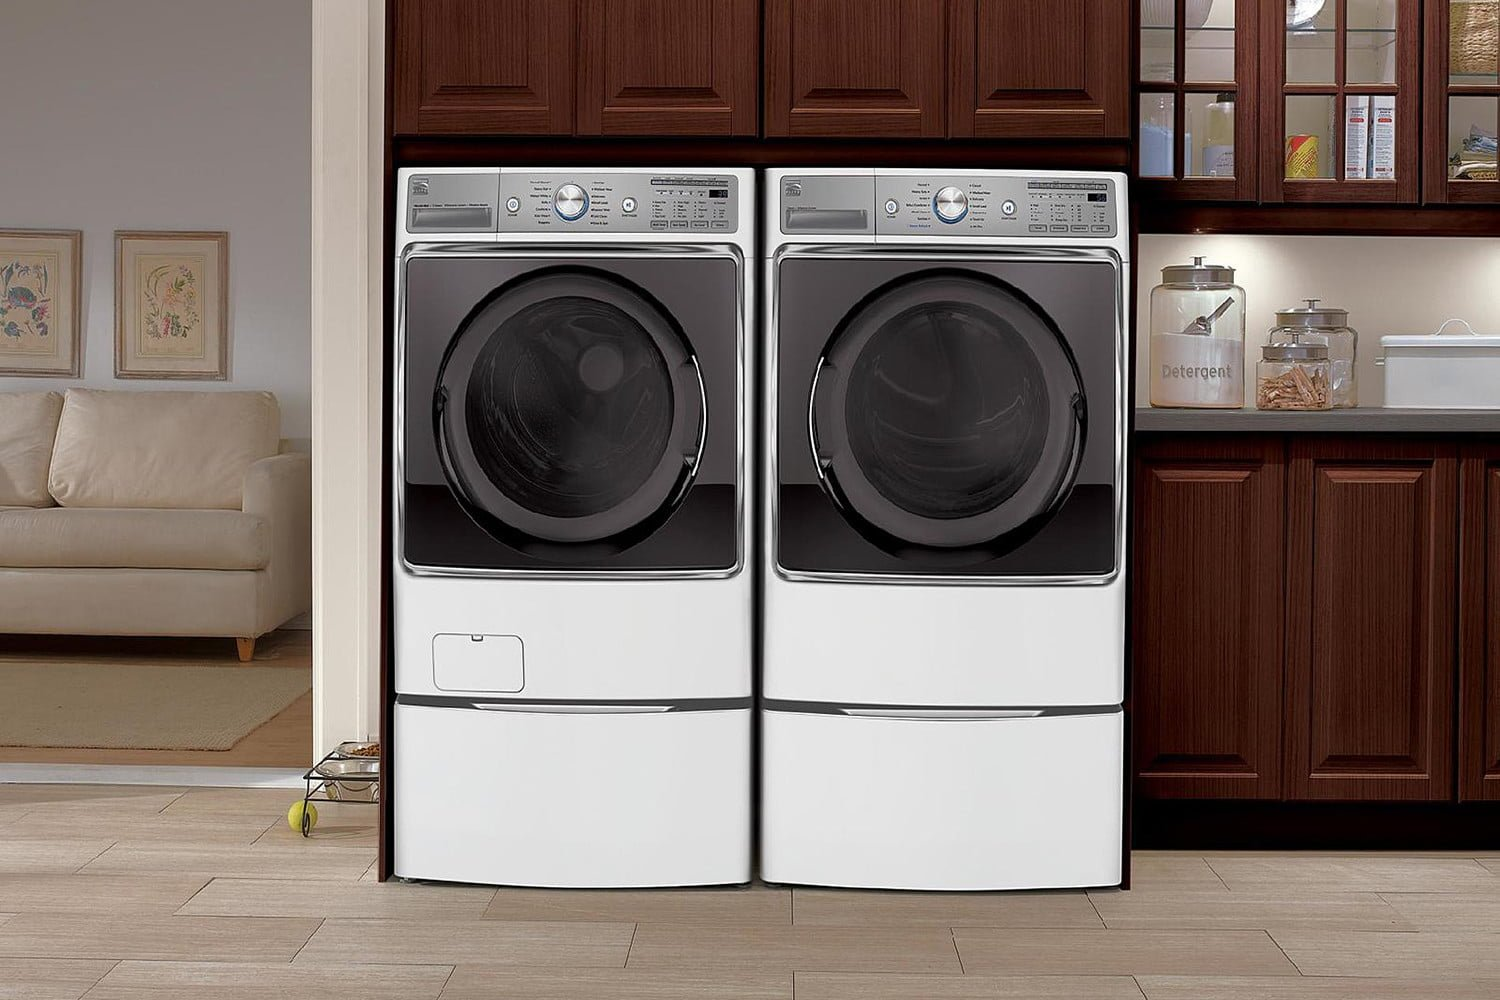 The Best Washing Machines Of 2018 Digital Trends Together With Samsung Electric Clothes Dryer Additionally Maytag